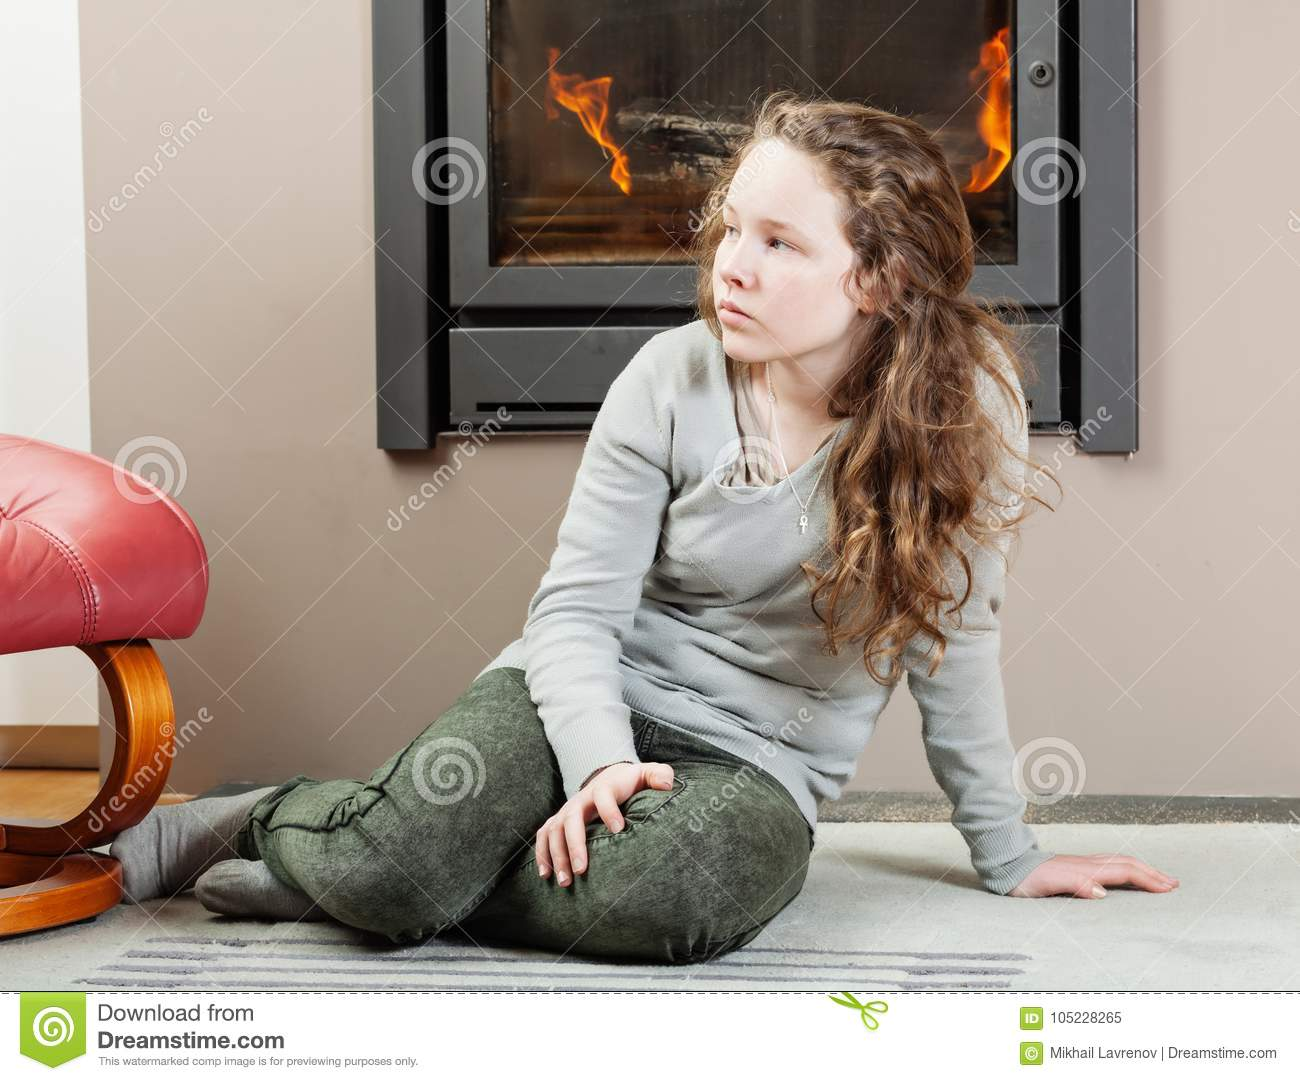 Thoughtful teenager girl sitting near fireplace